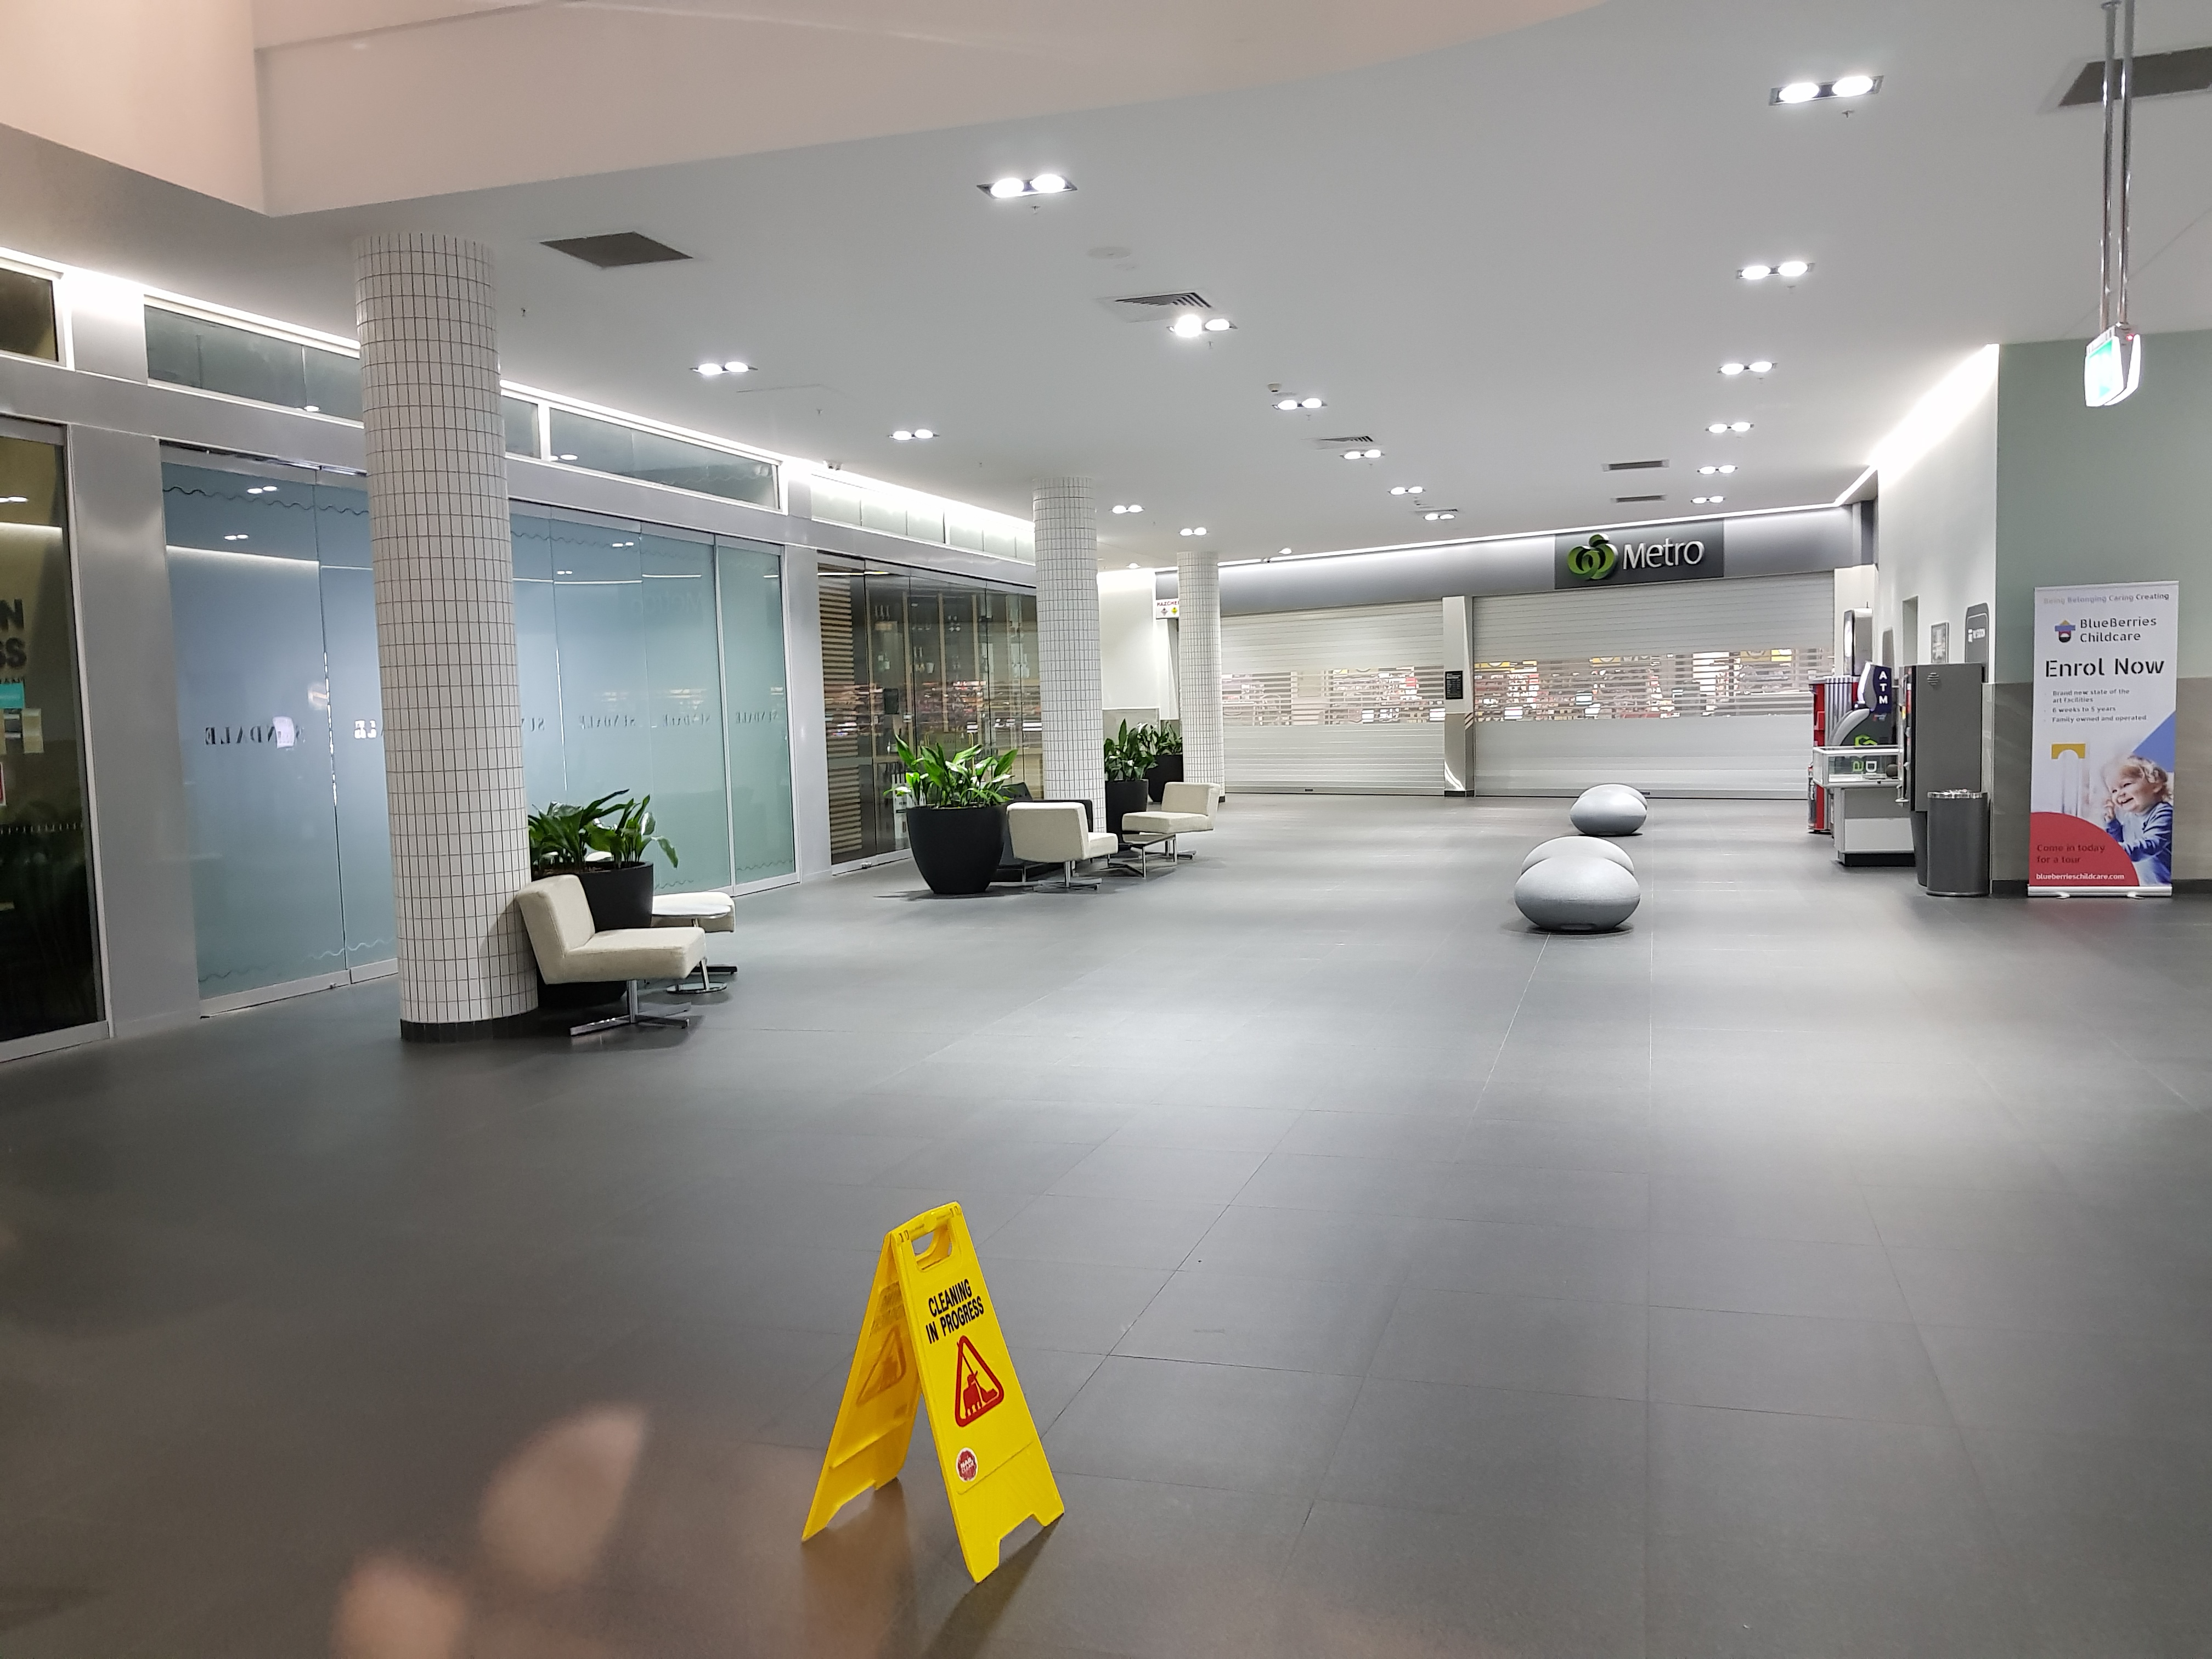 Shopping mall tiled floor maintenance cleaning and repairs